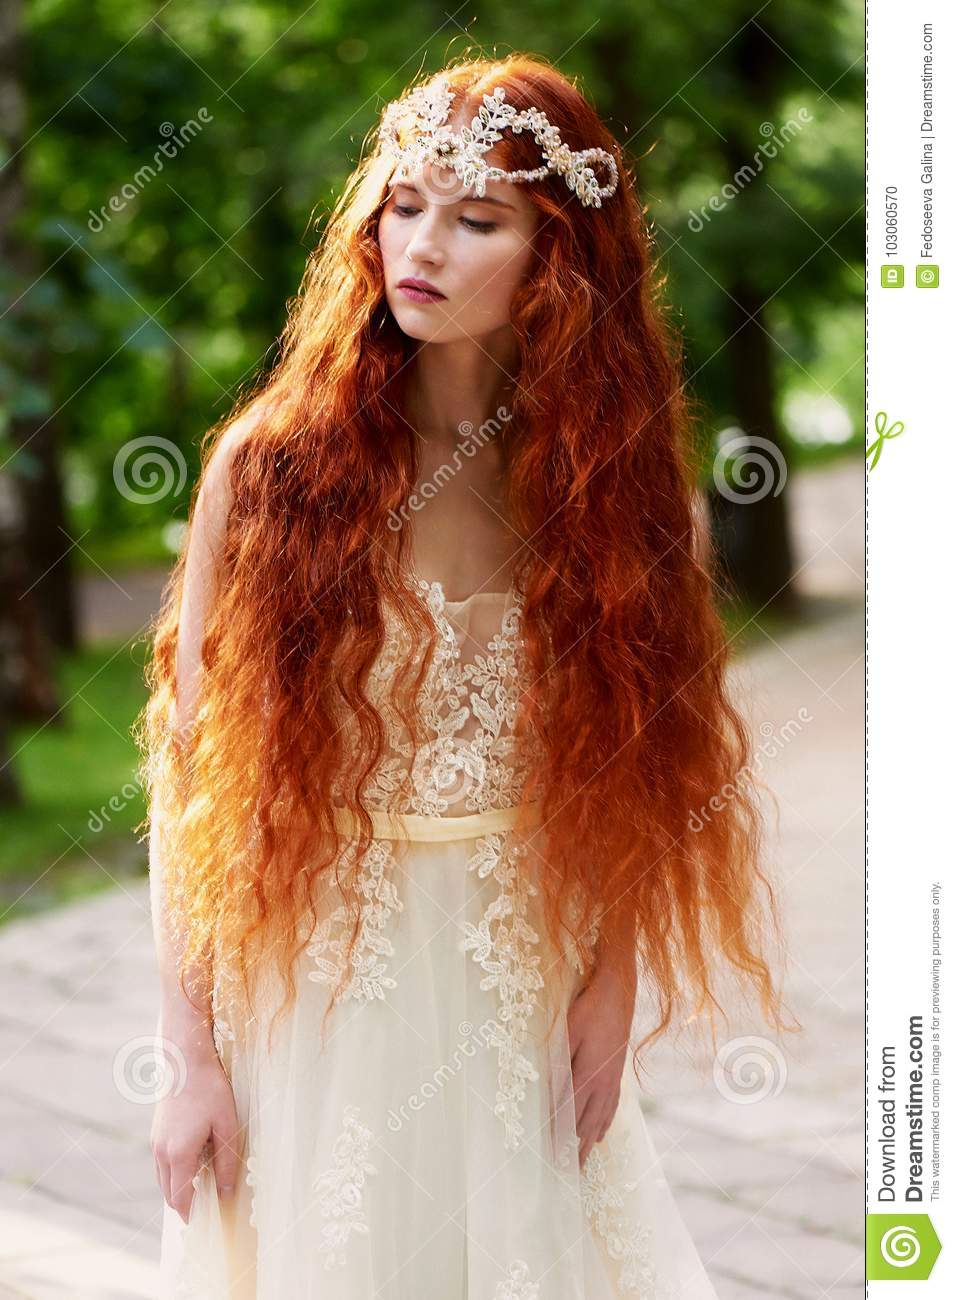 Beautiful Red Haired Girl With Long Curly Hair In The Bride In A